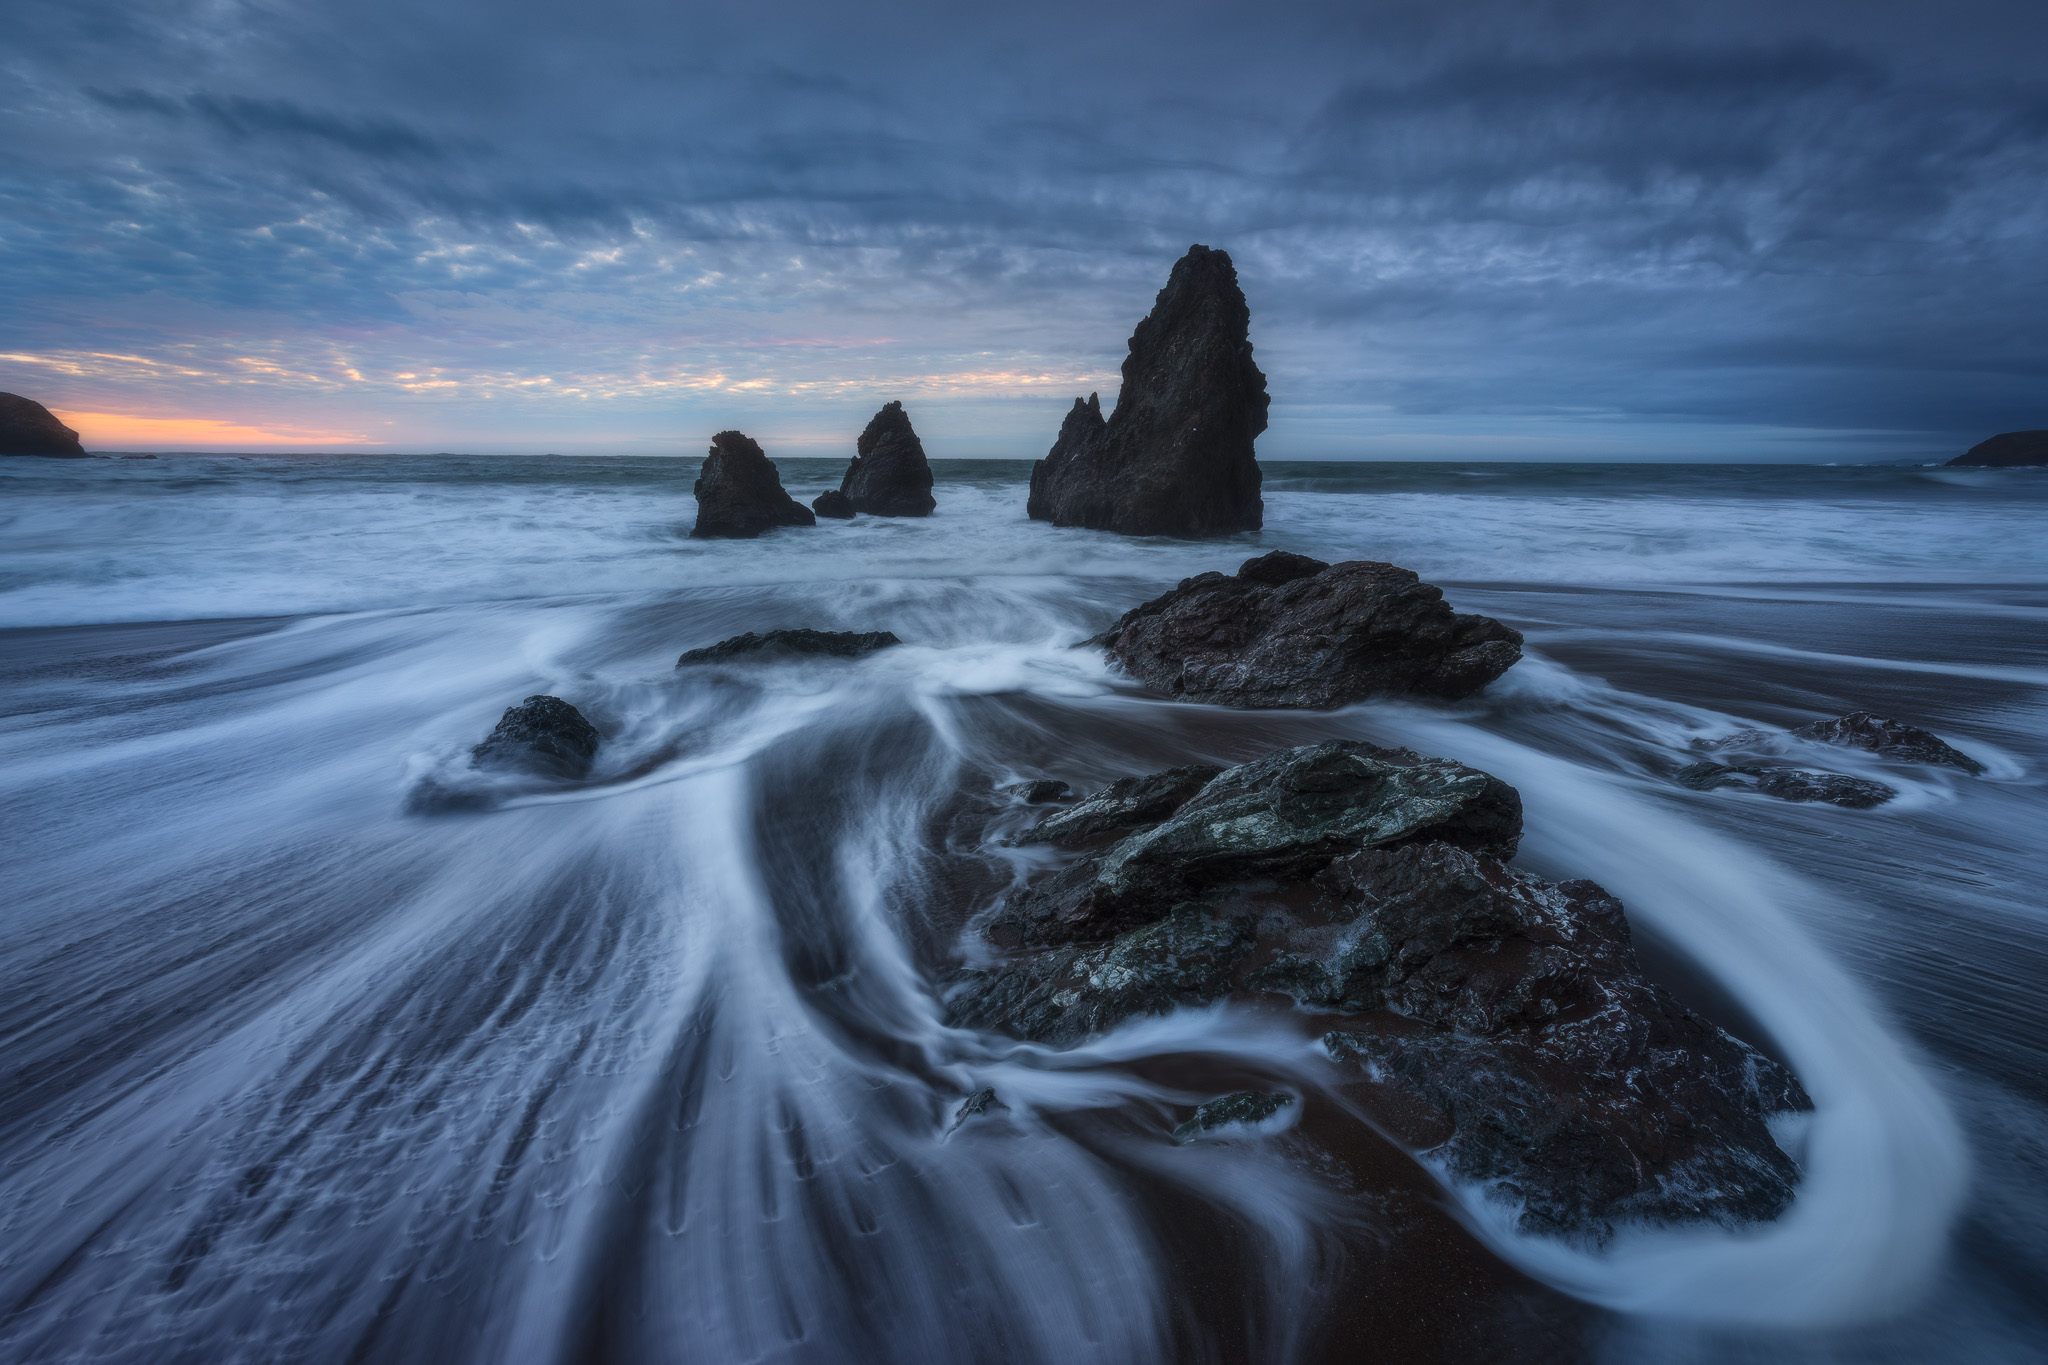 Rodeo Beach : Where an amazing sunset threatened but ultimately fizzled